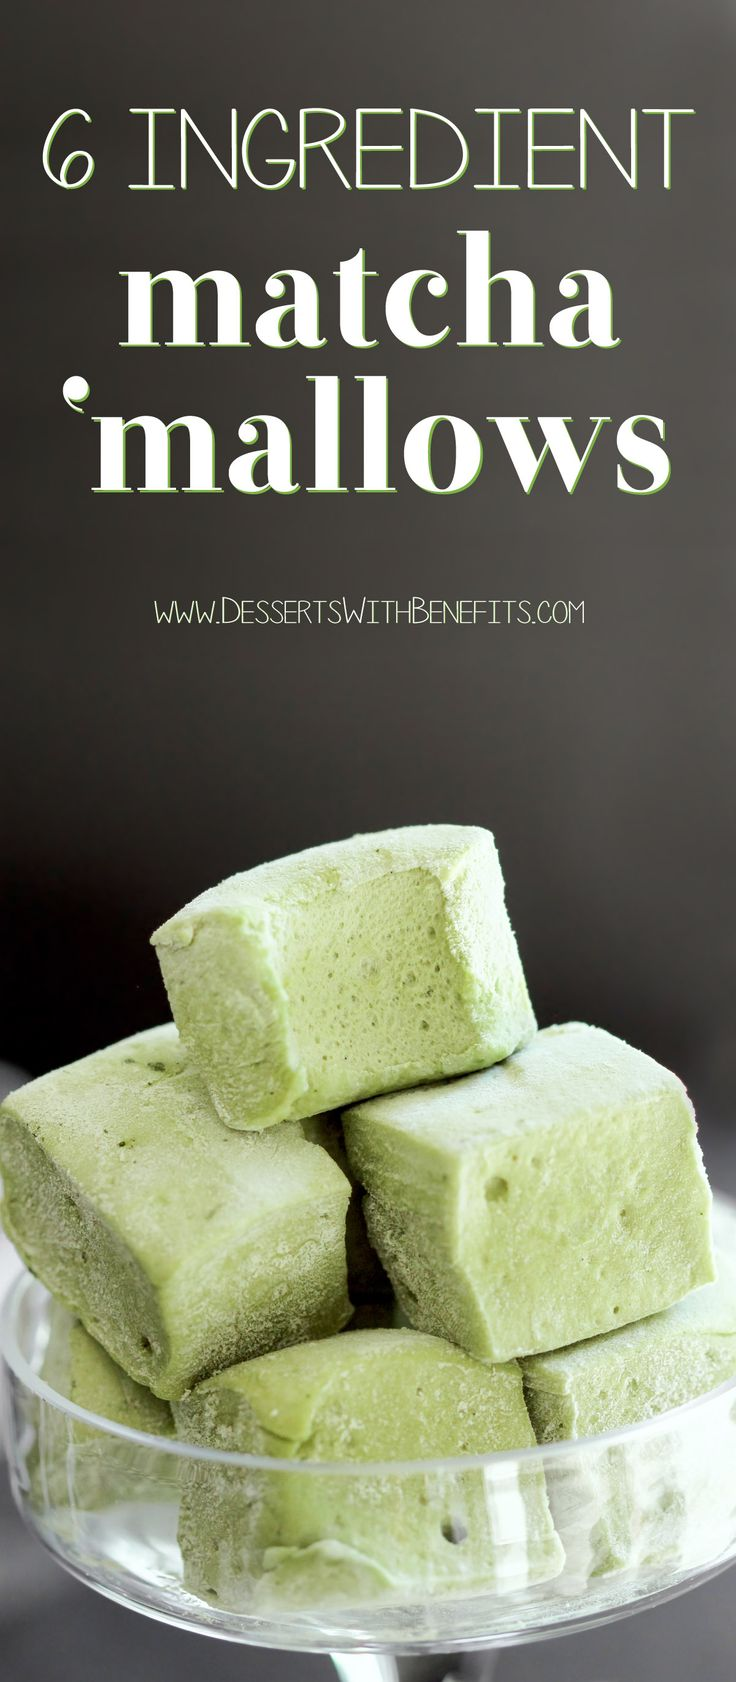 This recipe for UBER fluffy and cloud-like Healthy Matcha Green Tea Marshmallows is surprisingly fun to make and has just 6 ingredients... with no high fructose corn syrup in sight! Naturally colored, naturally flavored, and naturally sweetened.